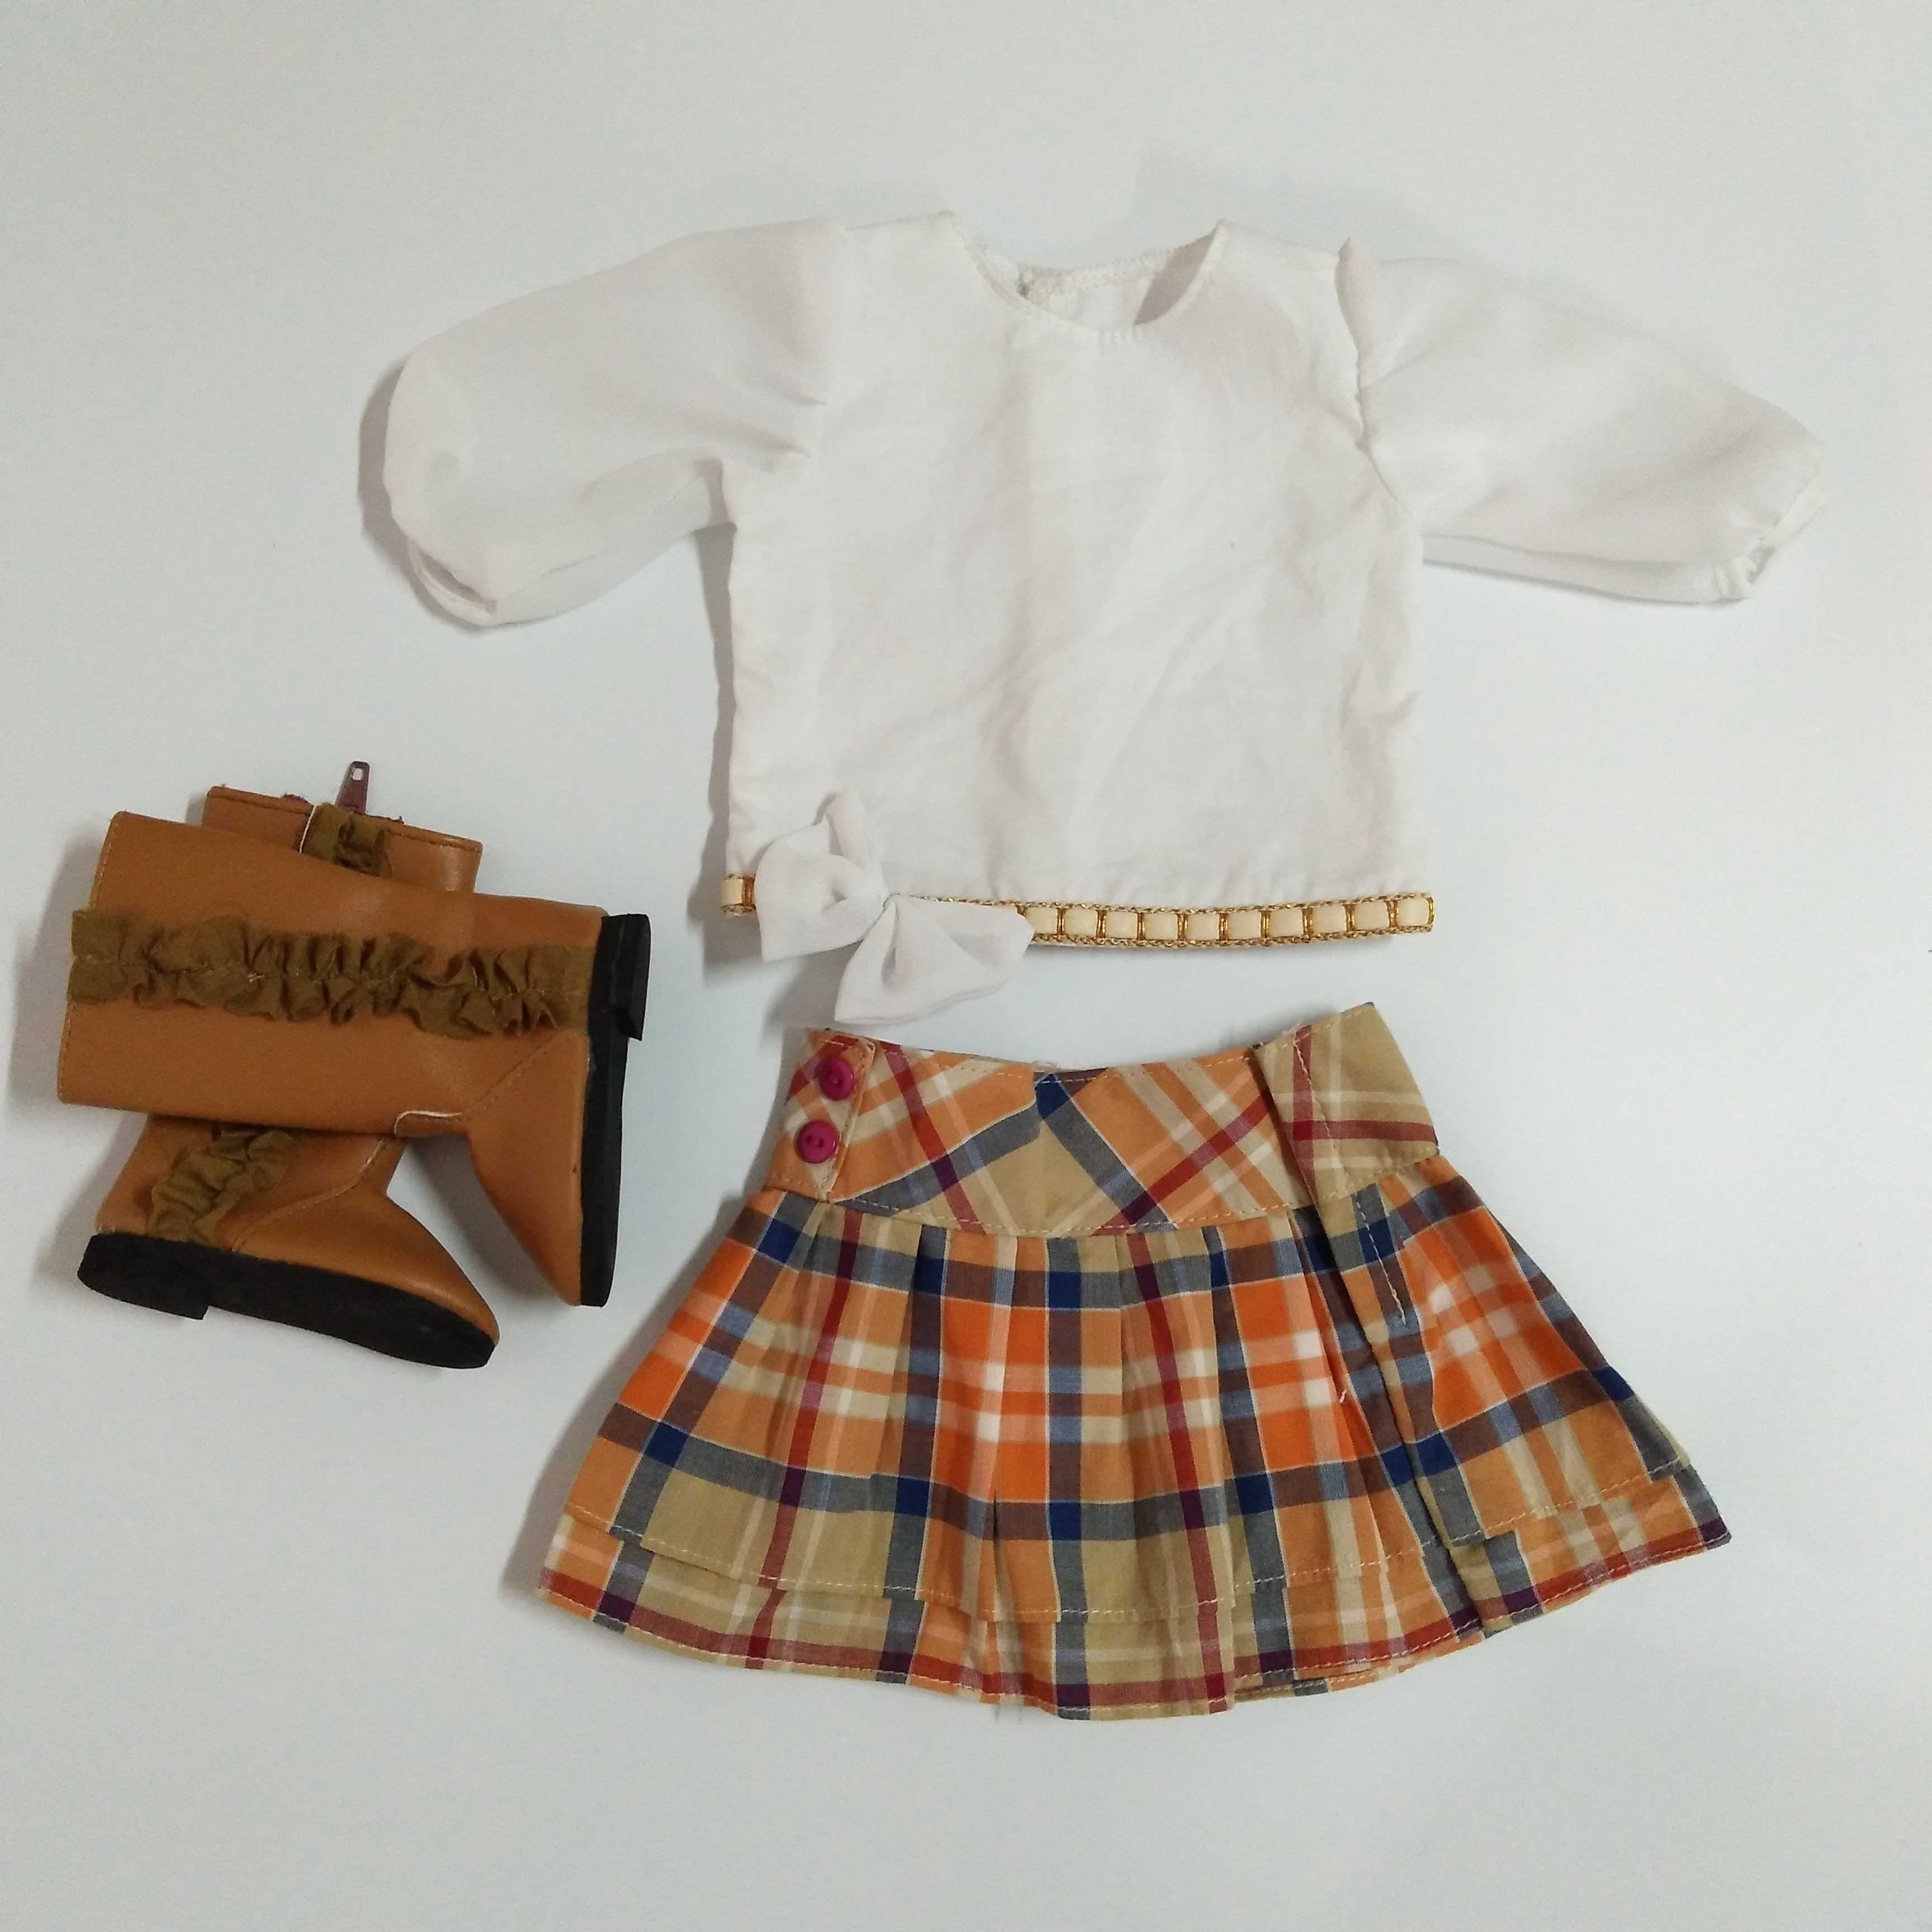 3 pieces doll clothes